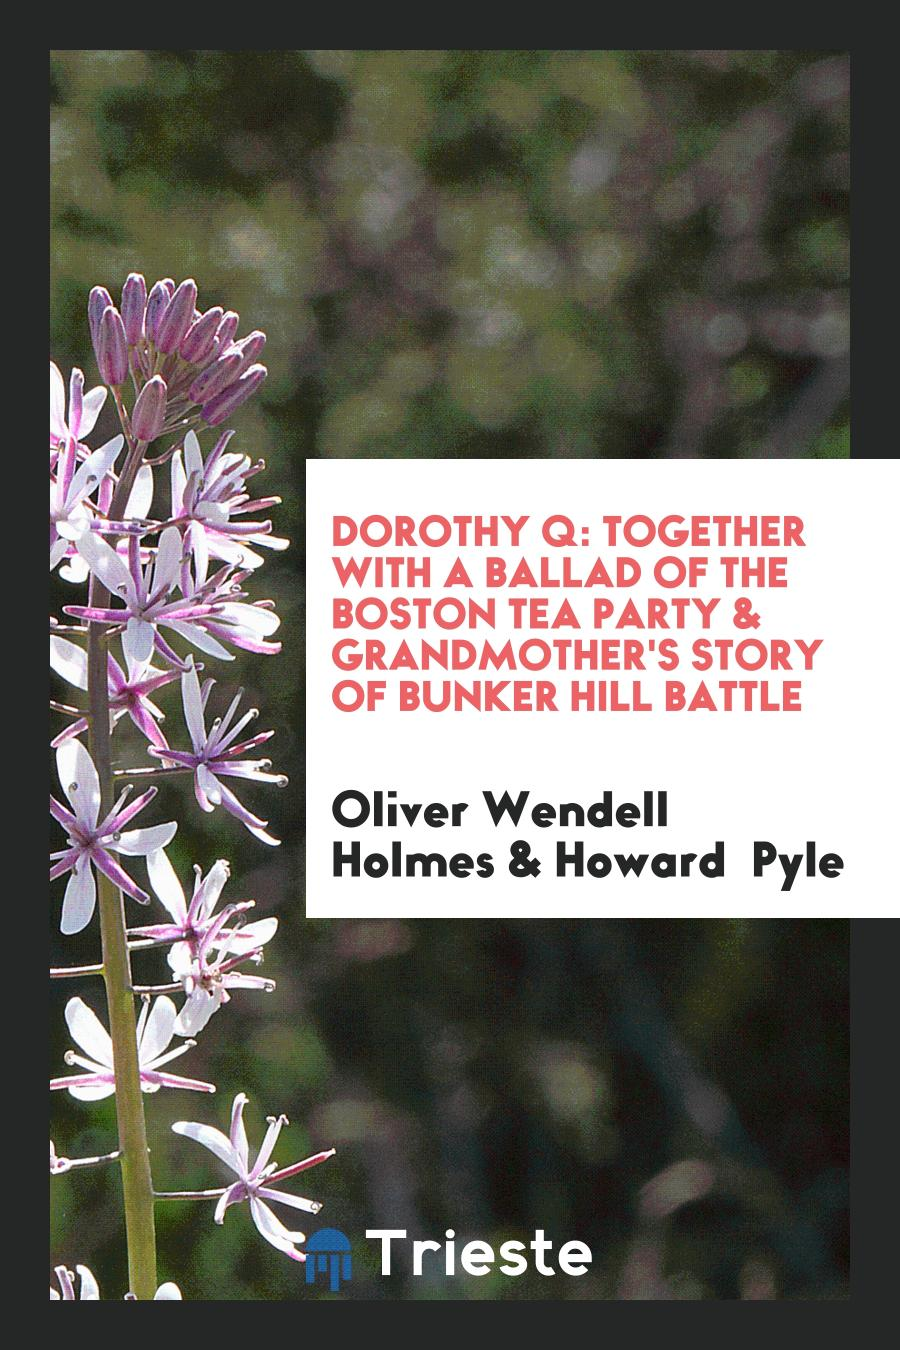 Dorothy Q: Together with a Ballad of the Boston Tea Party & Grandmother's Story of Bunker Hill Battle